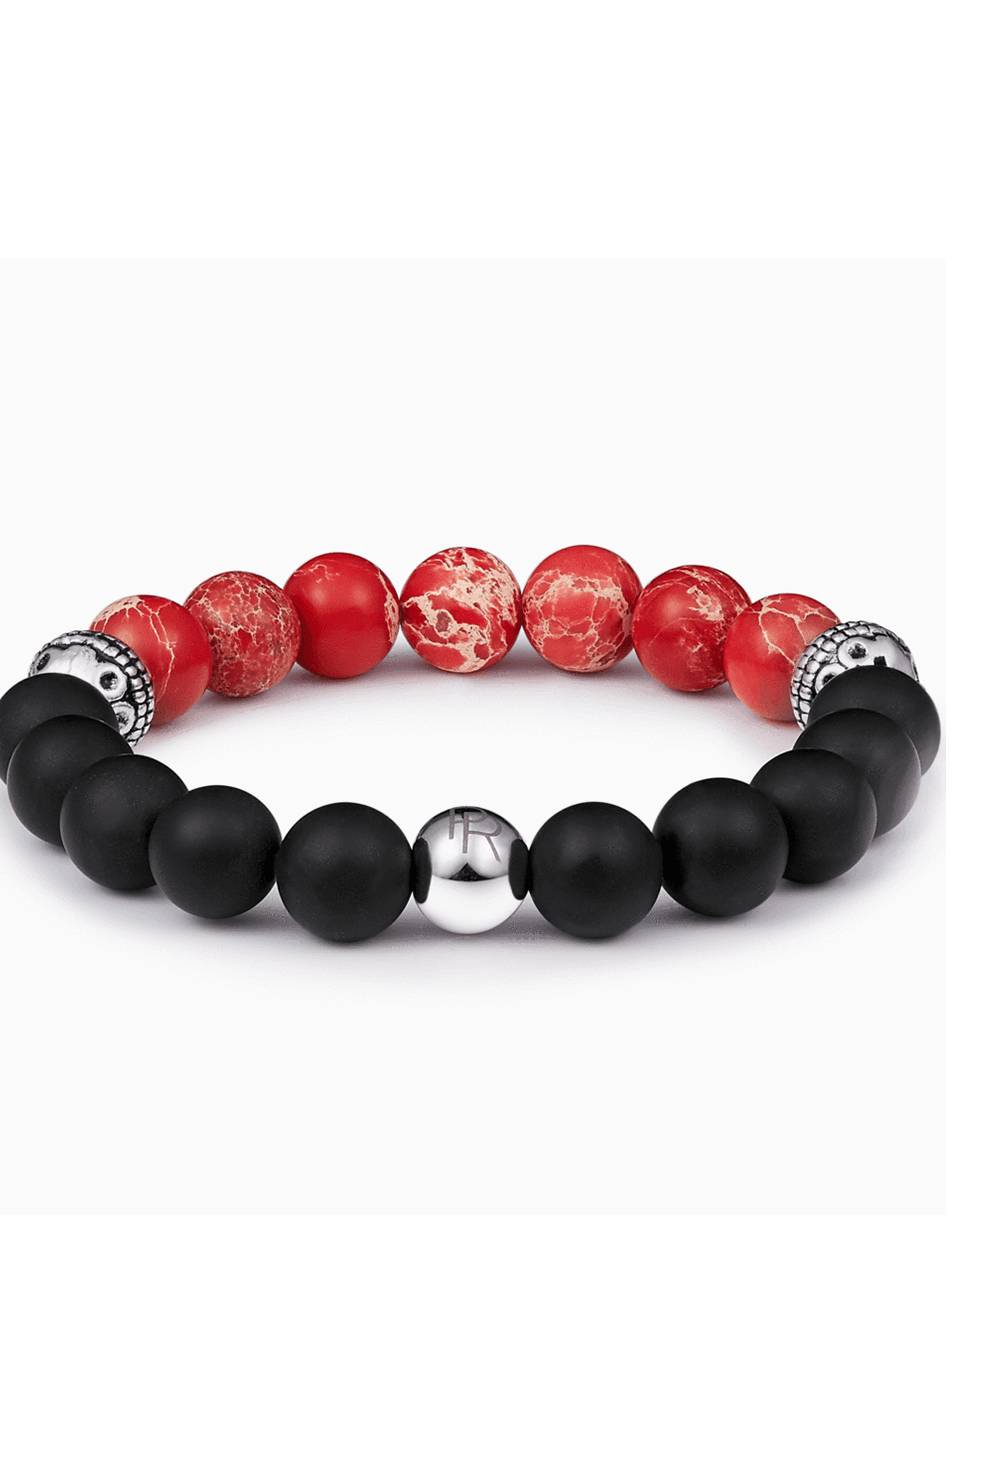 Red Lava Gemstone Bracelet